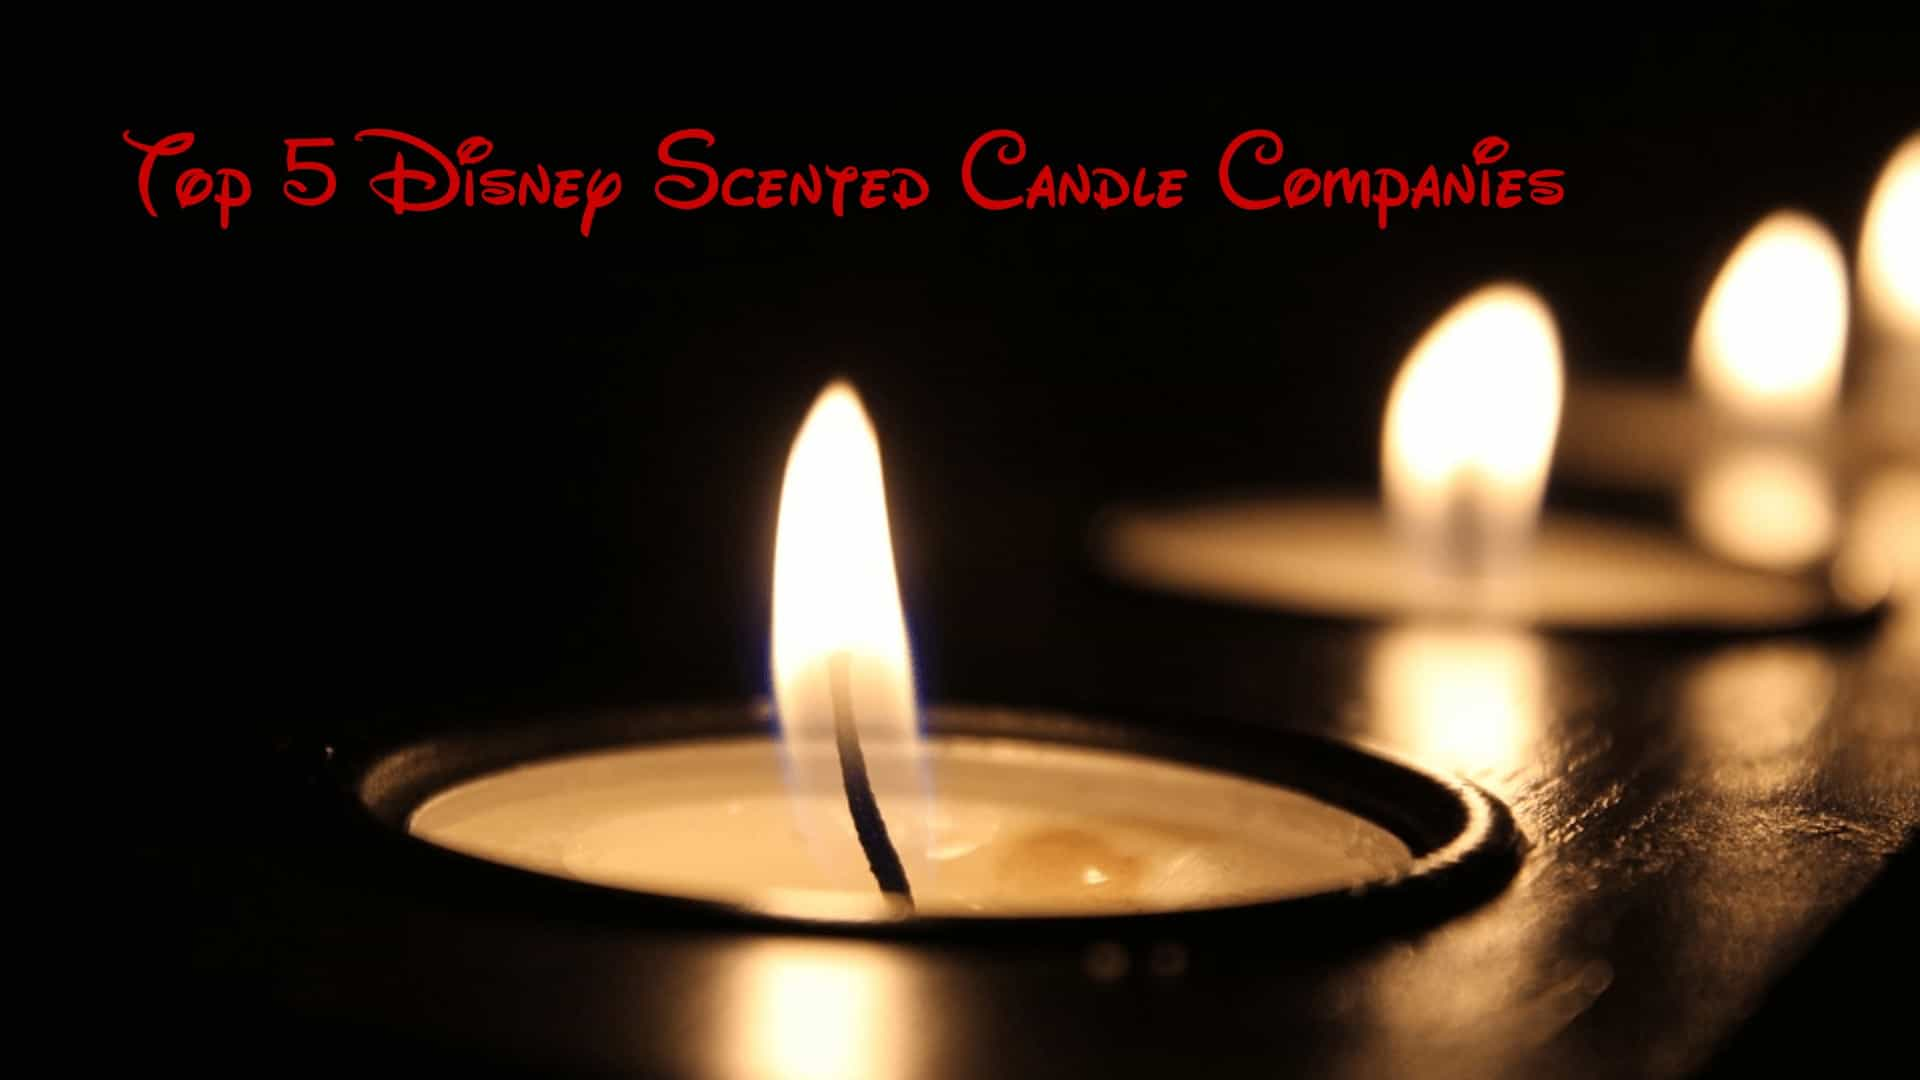 Best Disney Scented Candle Companies (Our Top 5)